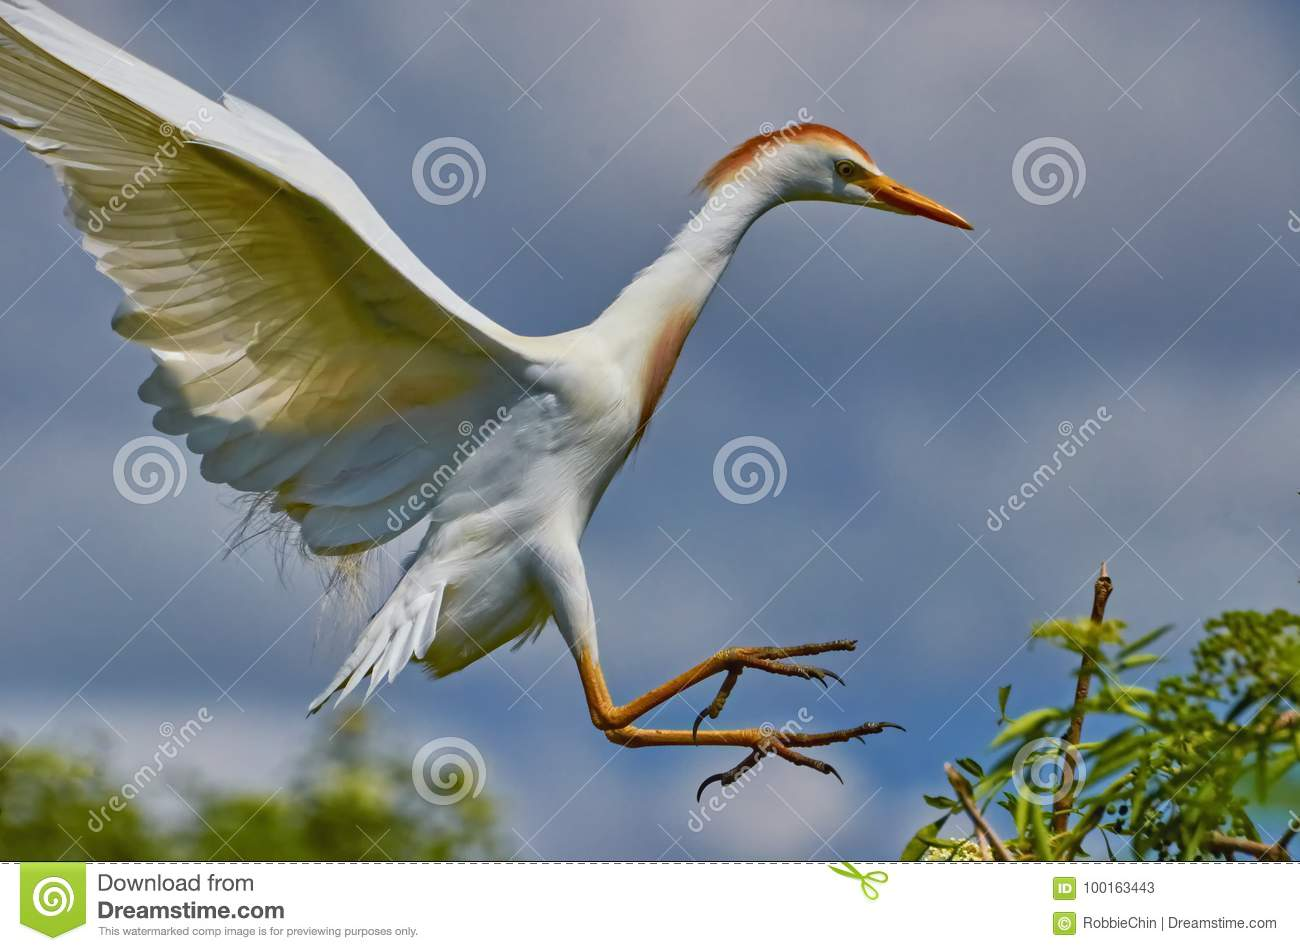 Cattle Egret coming to land